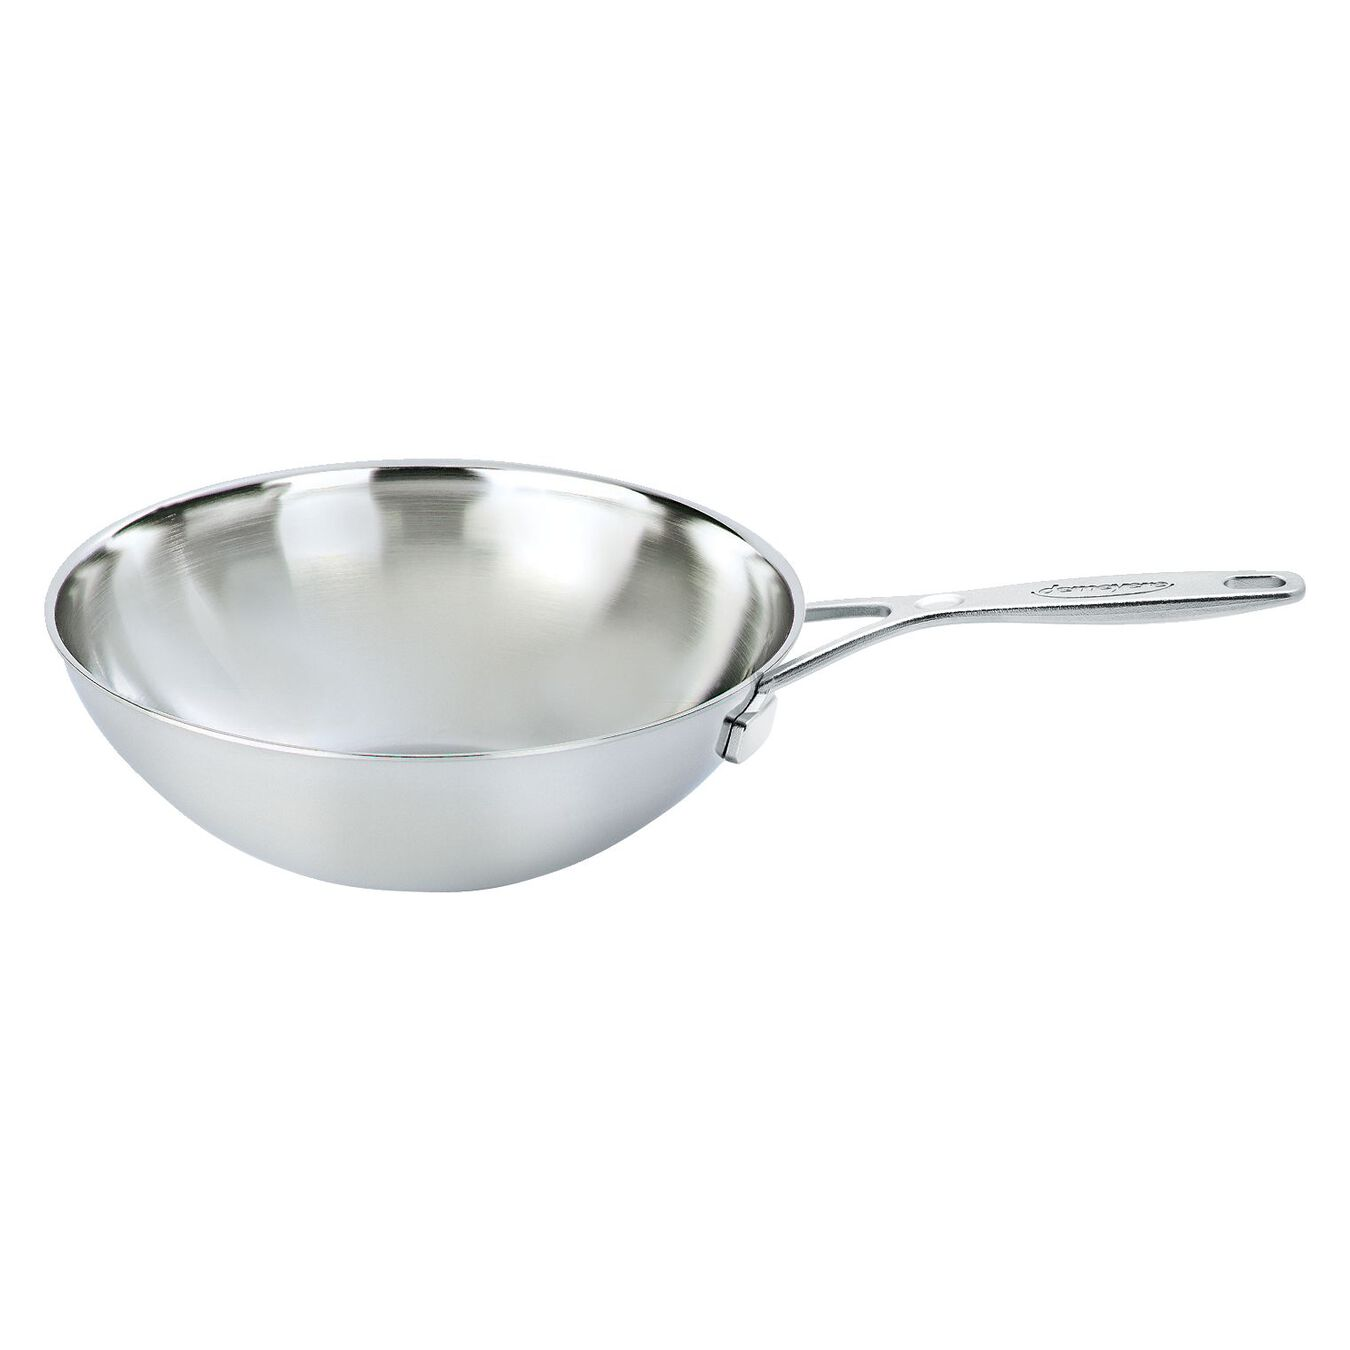 5-qt Stainless Steel Flat Bottom Wok with Helper Handle,,large 1